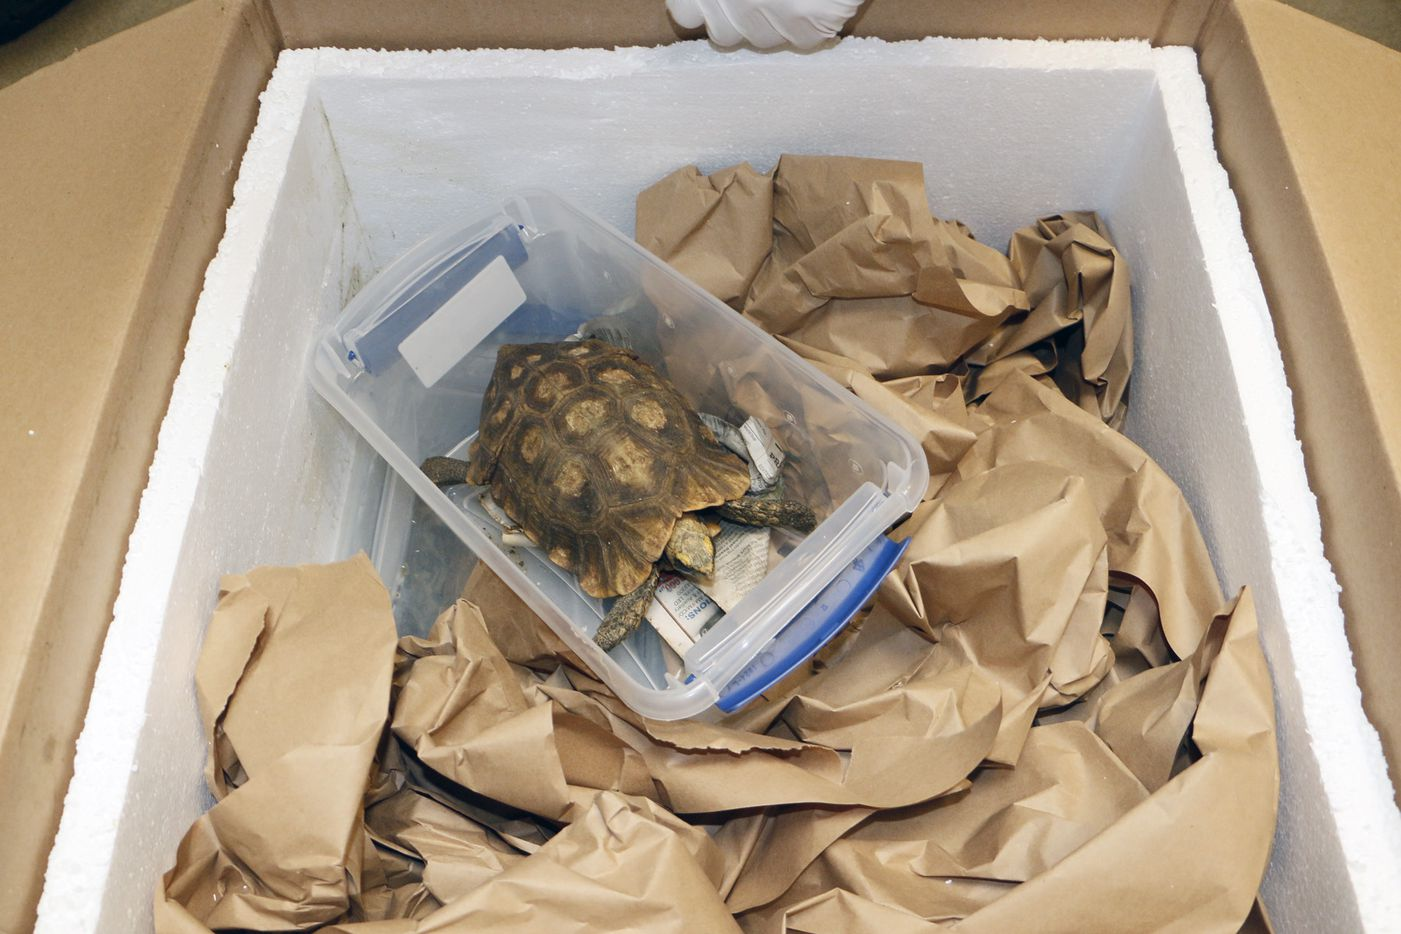 One of the 17 Home's hinge-back tortoises that was sent to the Dallas Zoo after being confiscated in Miami.